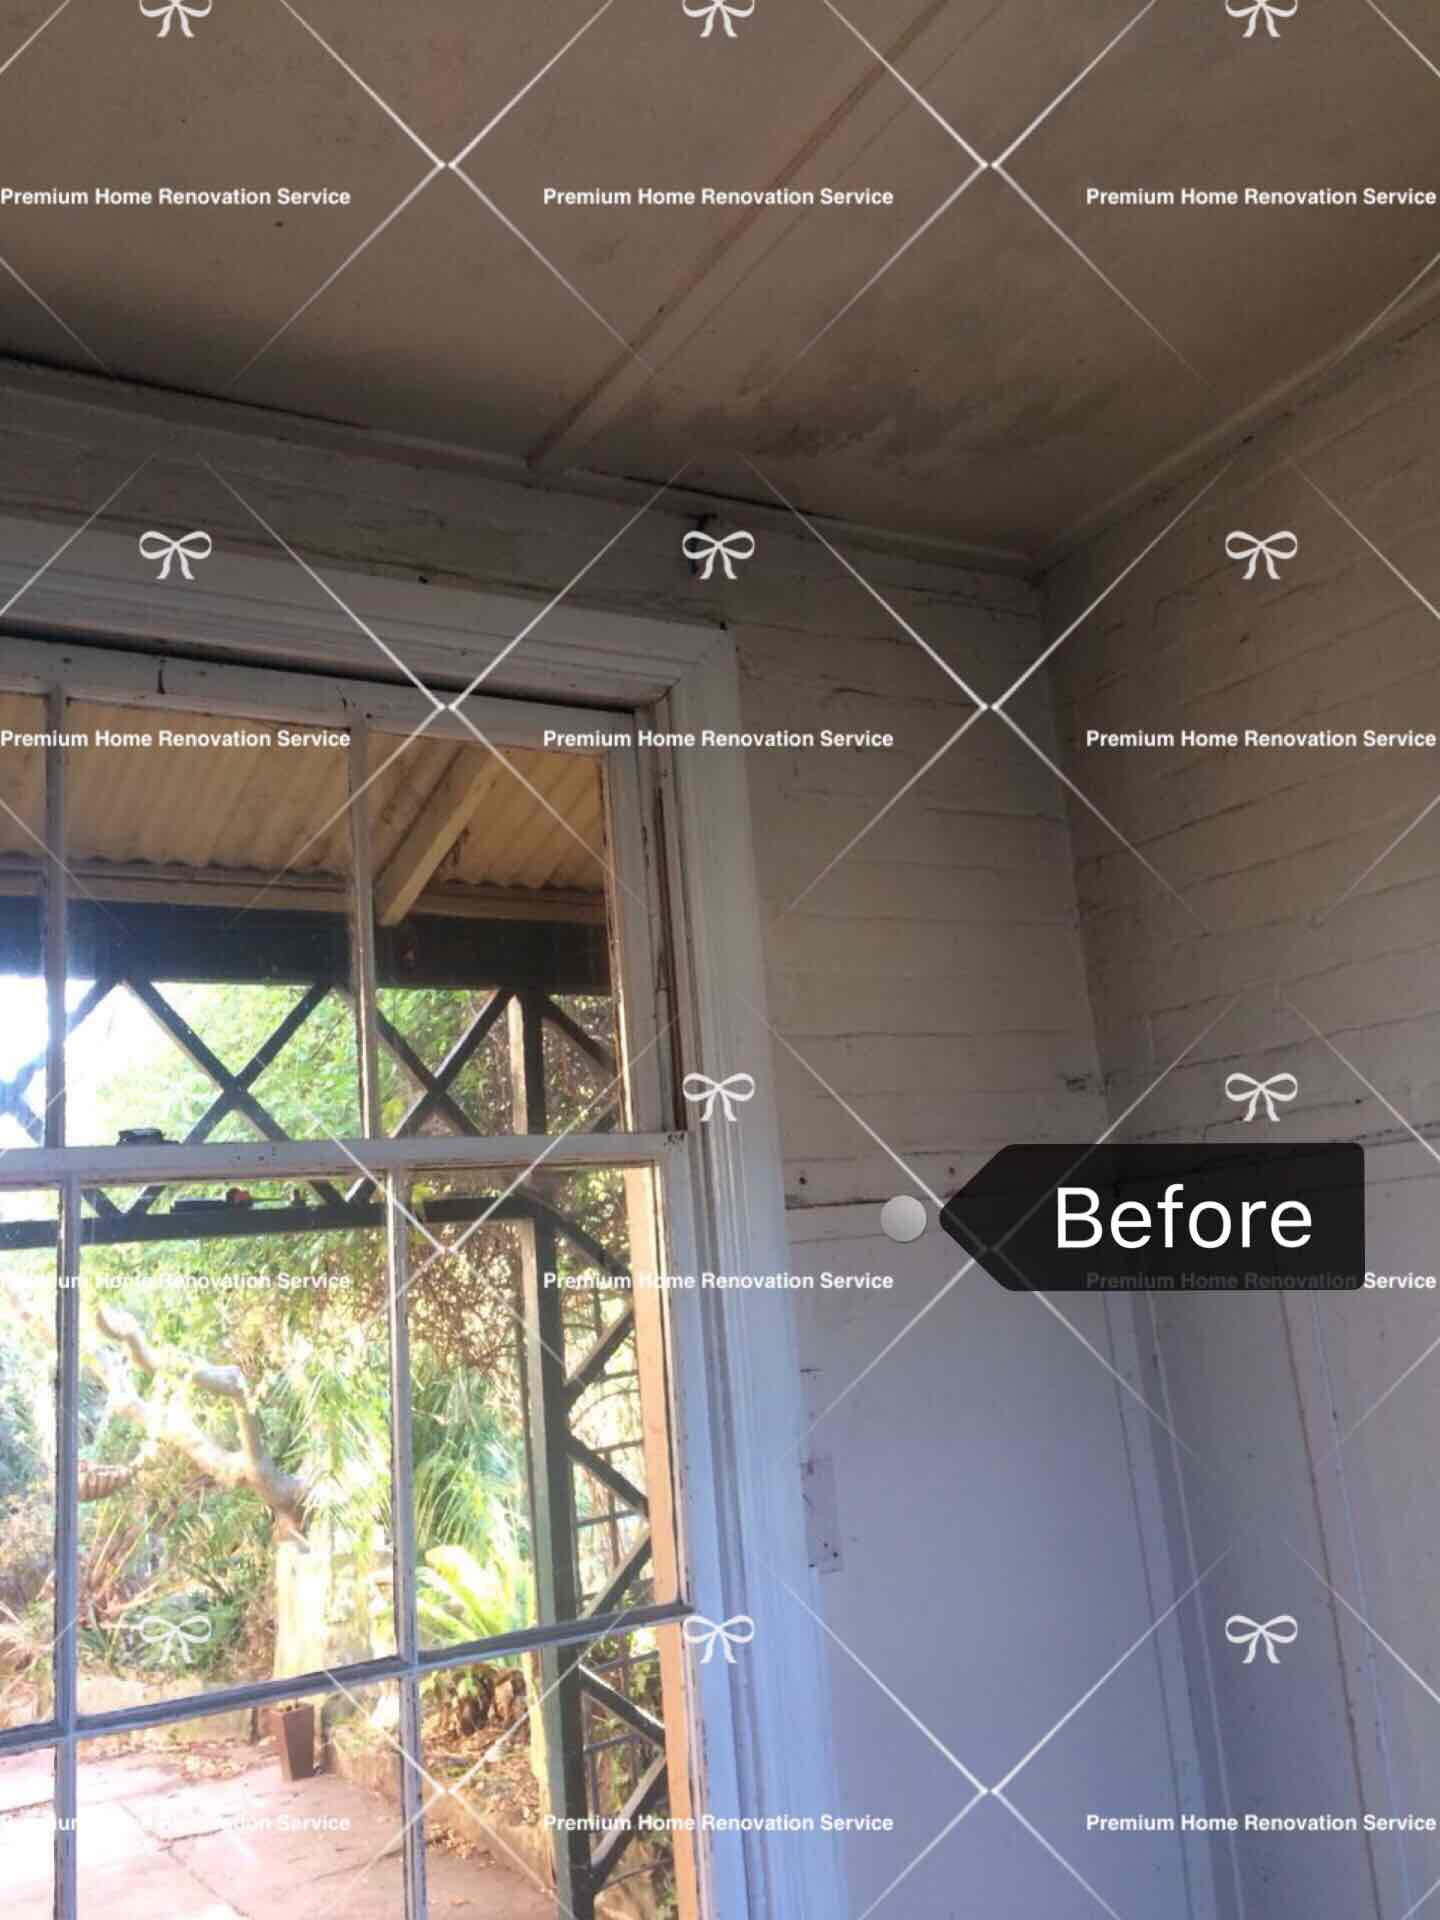 The 10 Best Plasterers in Hurlstone Park NSW - hipages